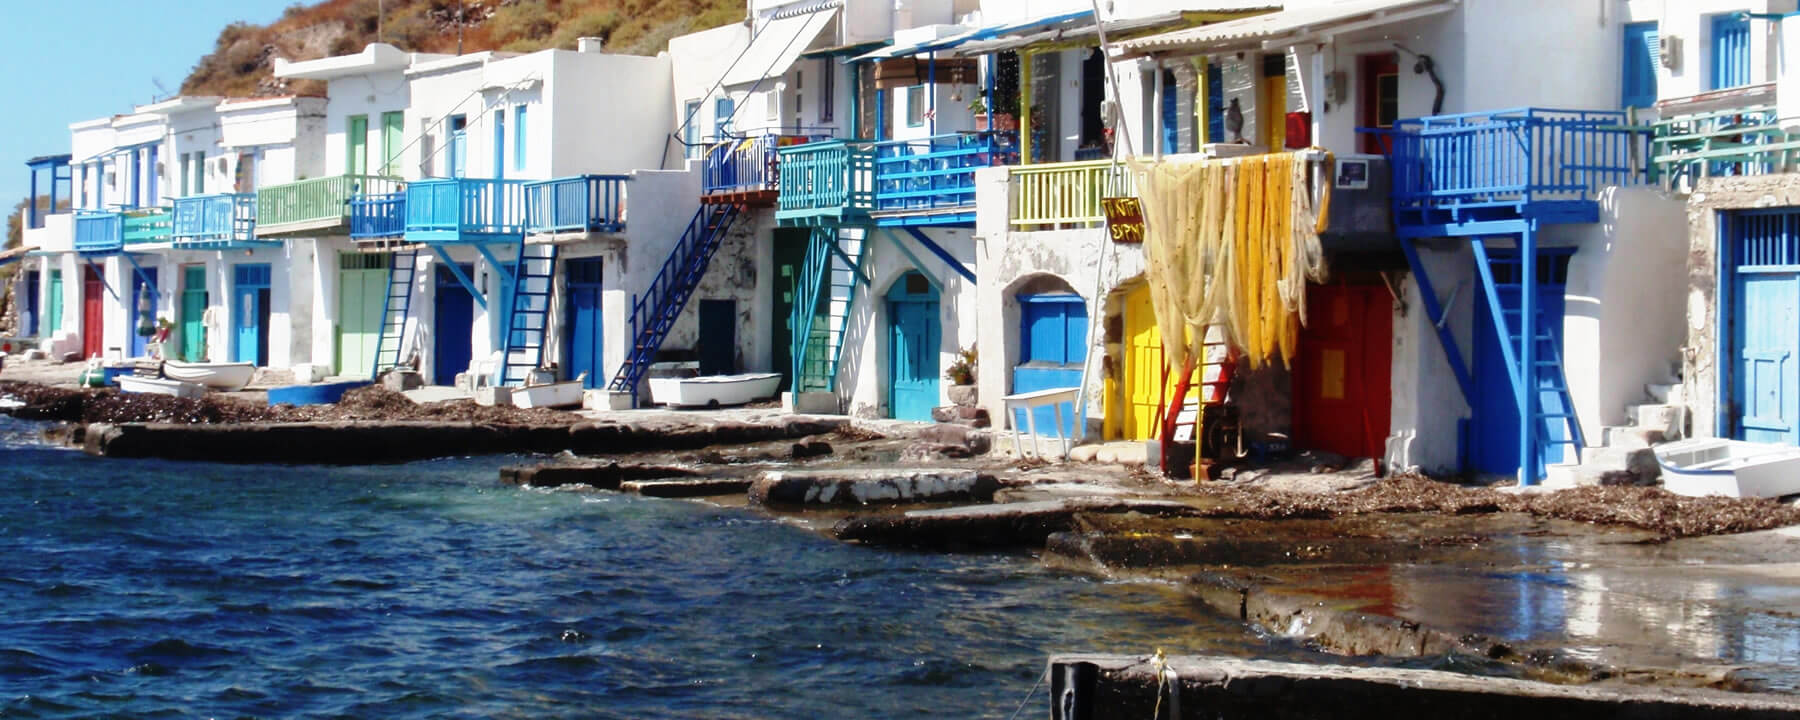 Cheap flights to Milos